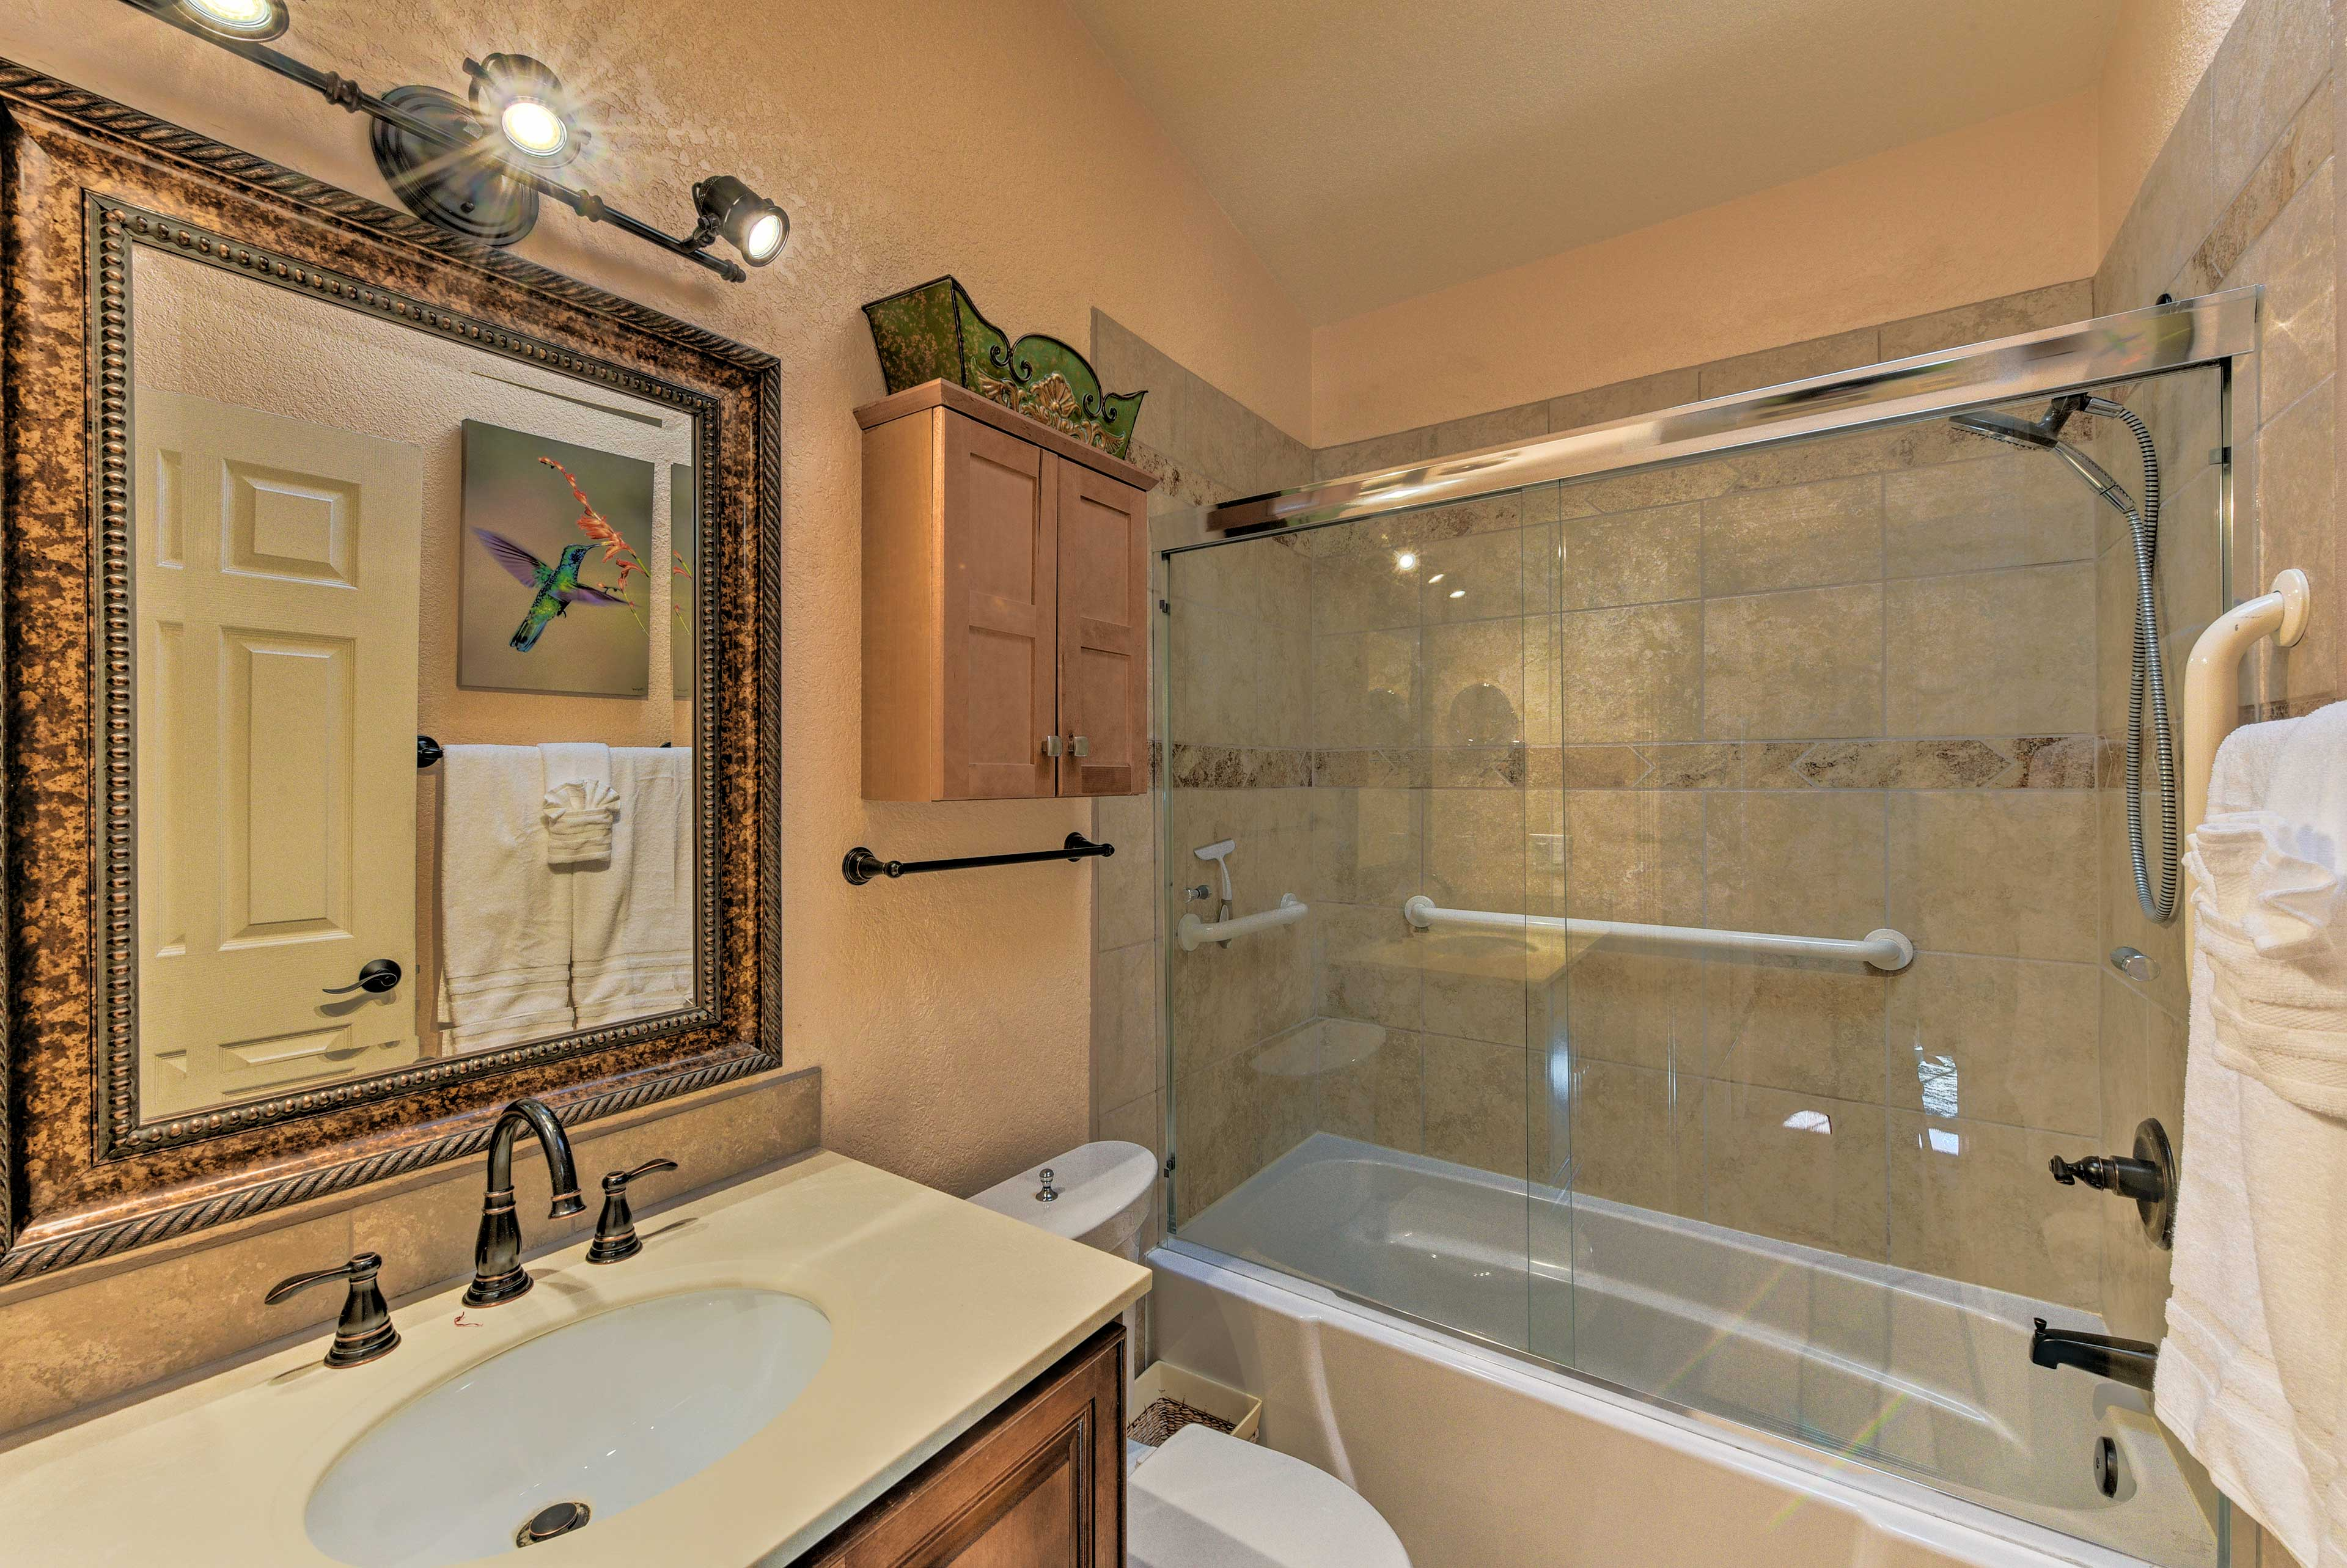 Rinse off in this lavish shower/tub combo!